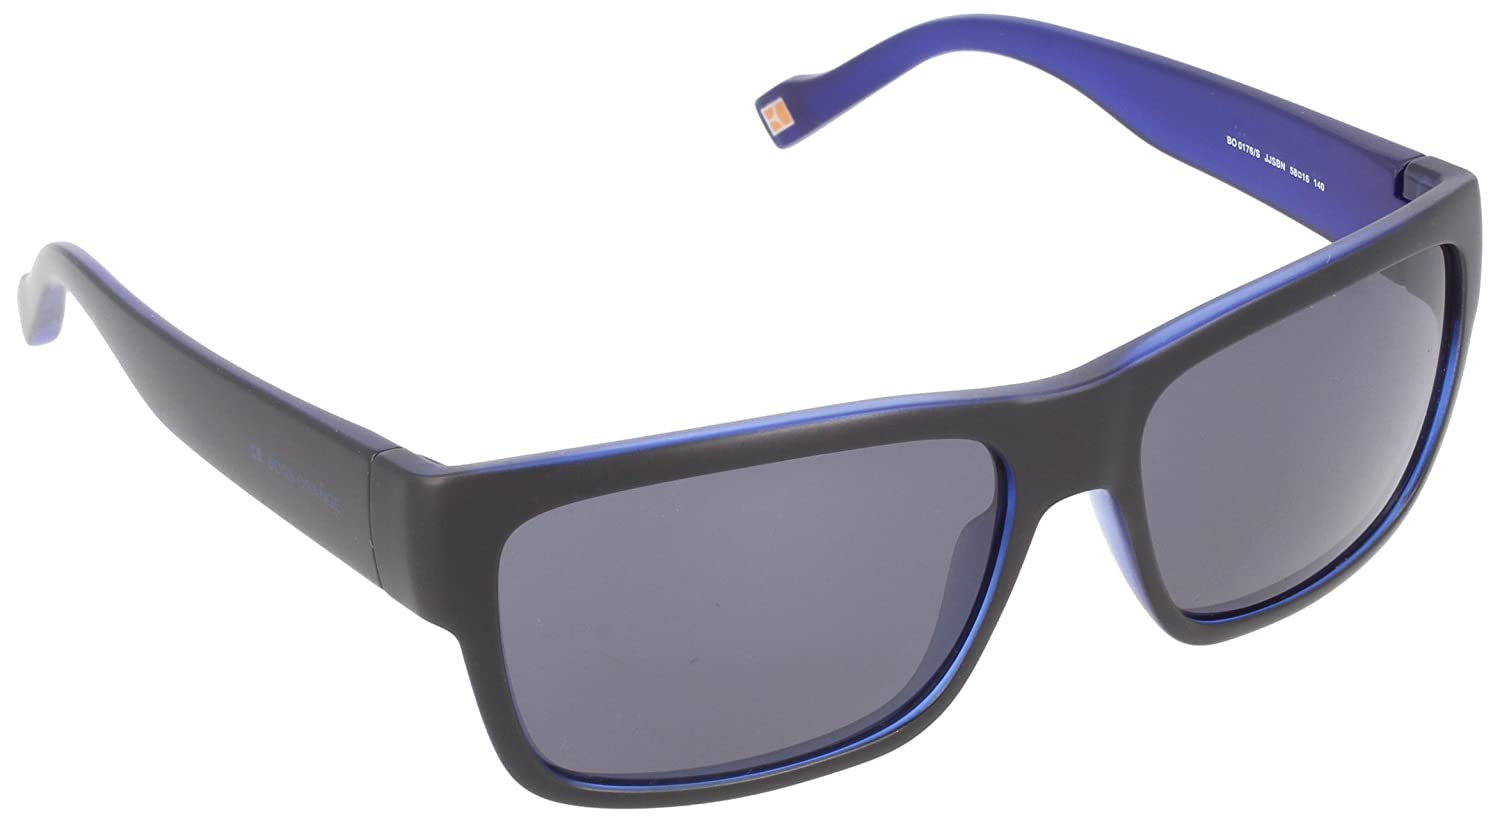 bd7f87411f5 Boss Orange Unisex-Adult s 0176 S Bn Sunglasses Black Bluee Jjs 58   Amazon.co.uk  Clothing